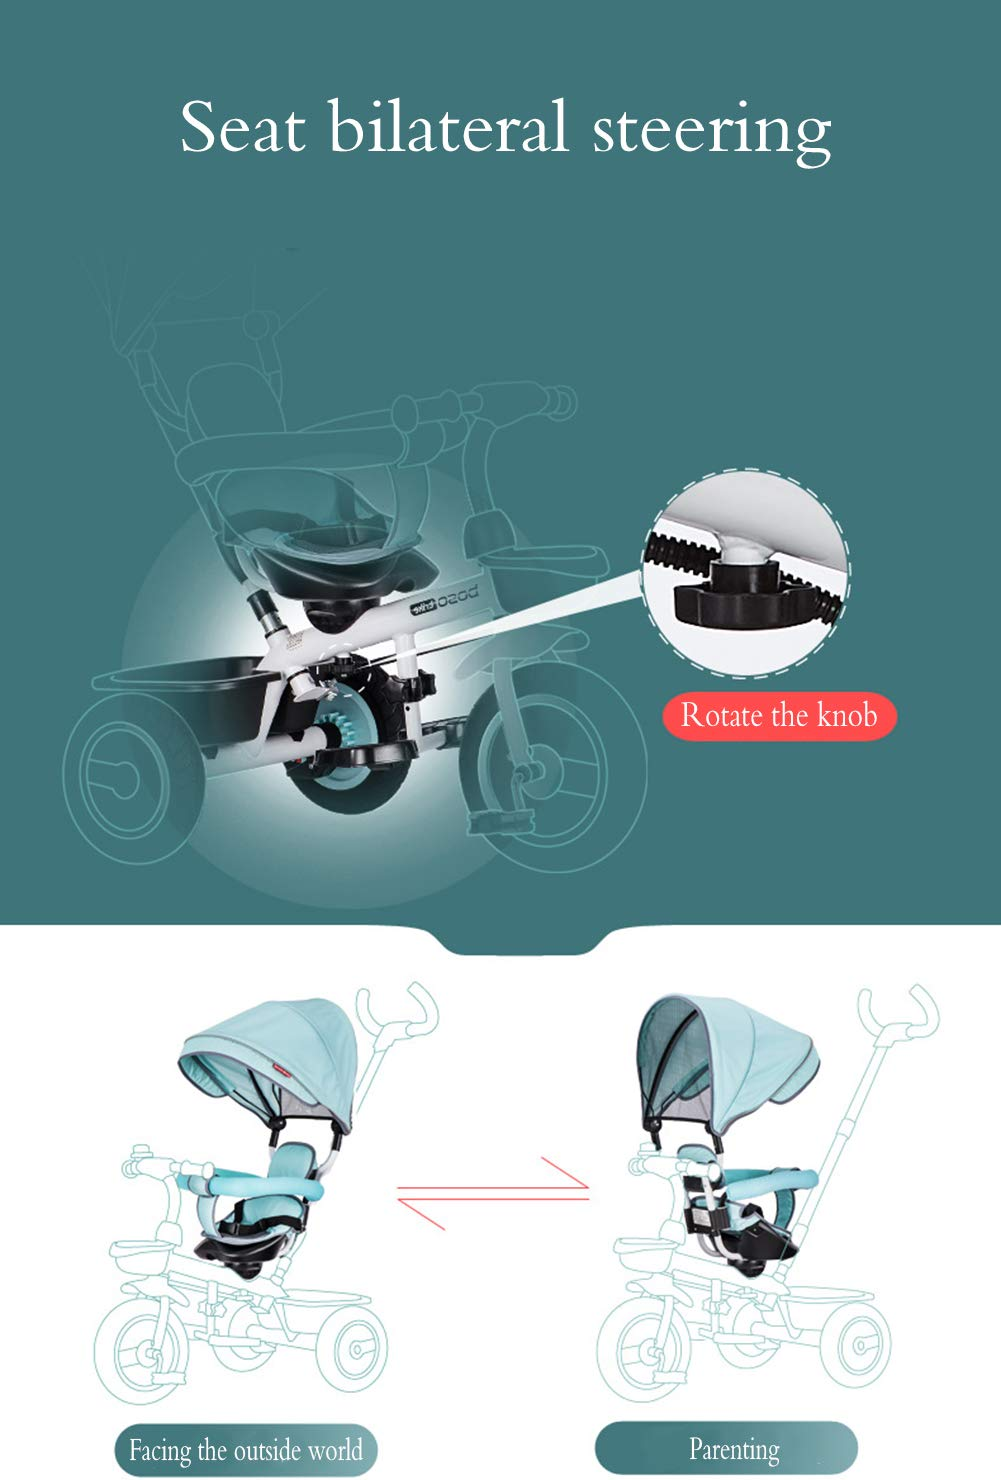 Children's Tricycle, Double-Sided Seat Stroller Adjustable Sun Visor Enlarged Storage Box Folding Pedal 3 to 6 Years Old Baby Indoor YYY ✅ 4-in-1 multi-function: two-way steering seat with push button unit. Push-pull, personalized putter multi-range adjustment putter to meet children of different heights, as the child grows, the tricycle can be adjusted to the fourth level. ✅ Durable material: This thrust tricycle is made of gem steel + environmentally friendly titanium empty wheel, with excellent strength, light resistance and anti-flaking adjustable awning. The tarpaulin material has a waterproof layer that blocks harmful ultraviolet rays, has a good sunscreen effect, and has mesh ventilation. ✅Safe design: The front wheel clutch has a two-stroke system. The steering linkage and quiet design effectively control the noise problems that may occur during implementation. Seat belt and guardrail and guardrail with double fixing pad 3